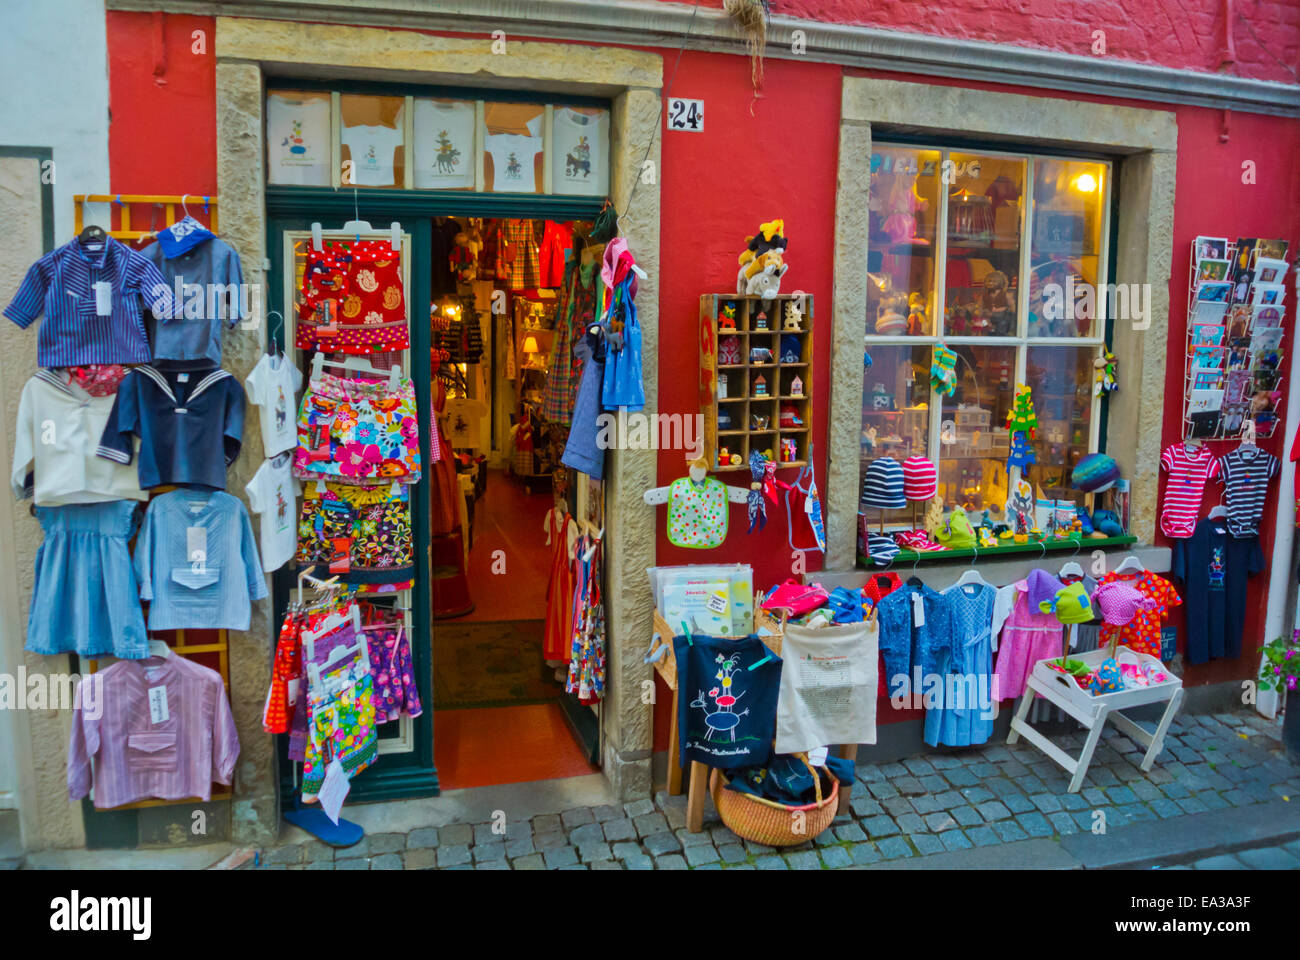 shop selling childrens clothing and souvenirs schnoorviertel stock photo 75061827 alamy. Black Bedroom Furniture Sets. Home Design Ideas